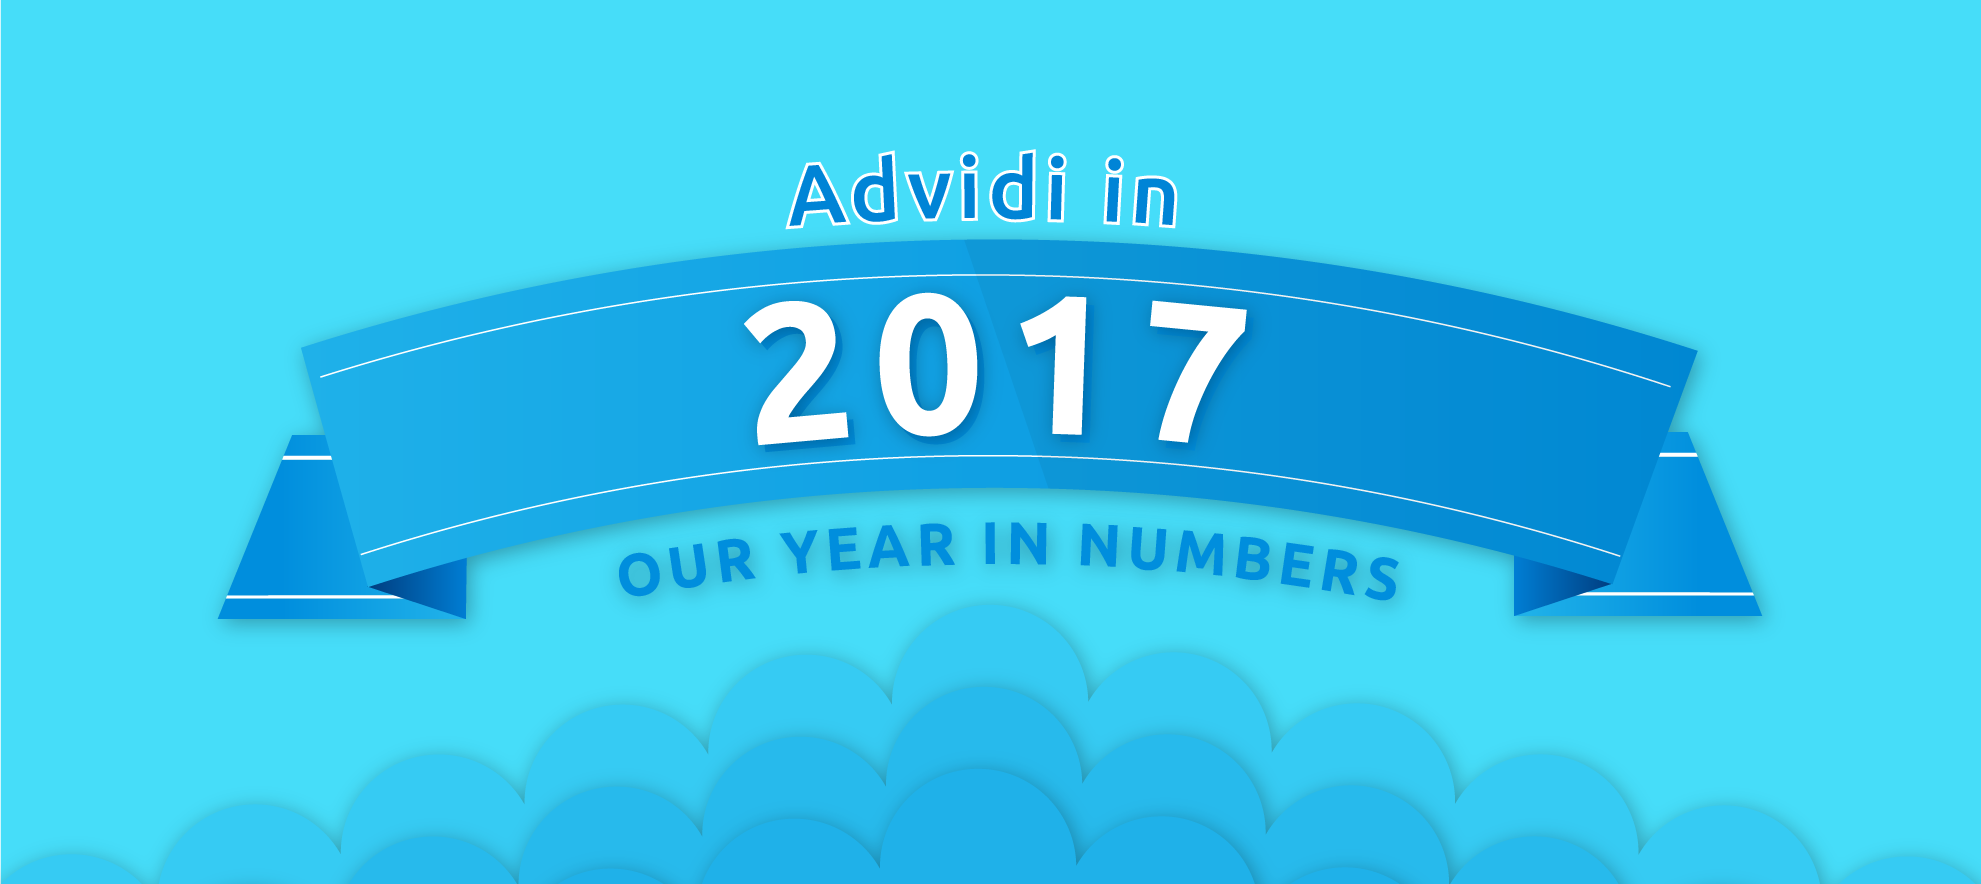 2017: Our Year in Numbers